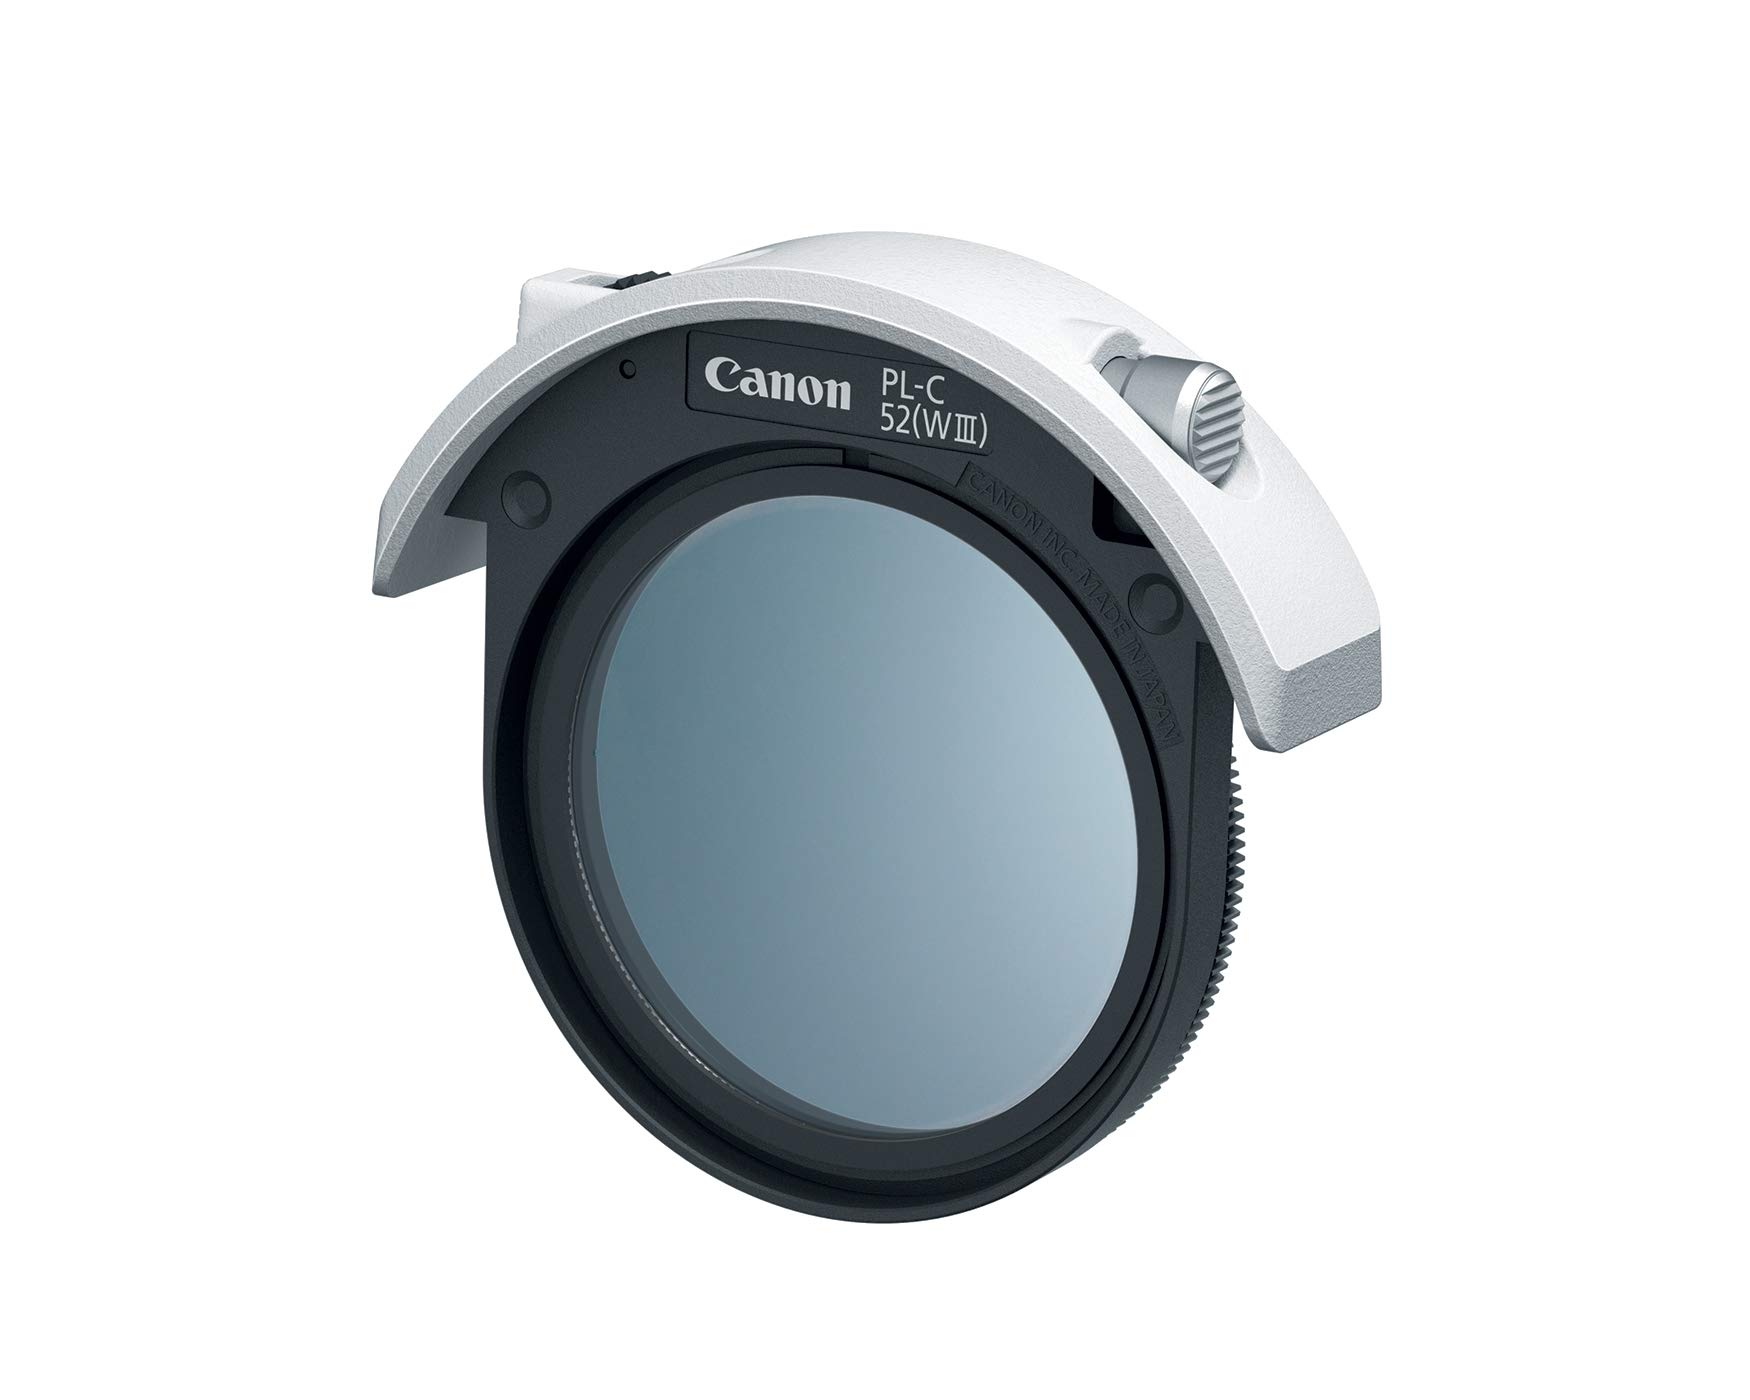 Canon Drop-In Circular Polarizing Filter PL-C 52 (WIII) by Canon (Image #1)